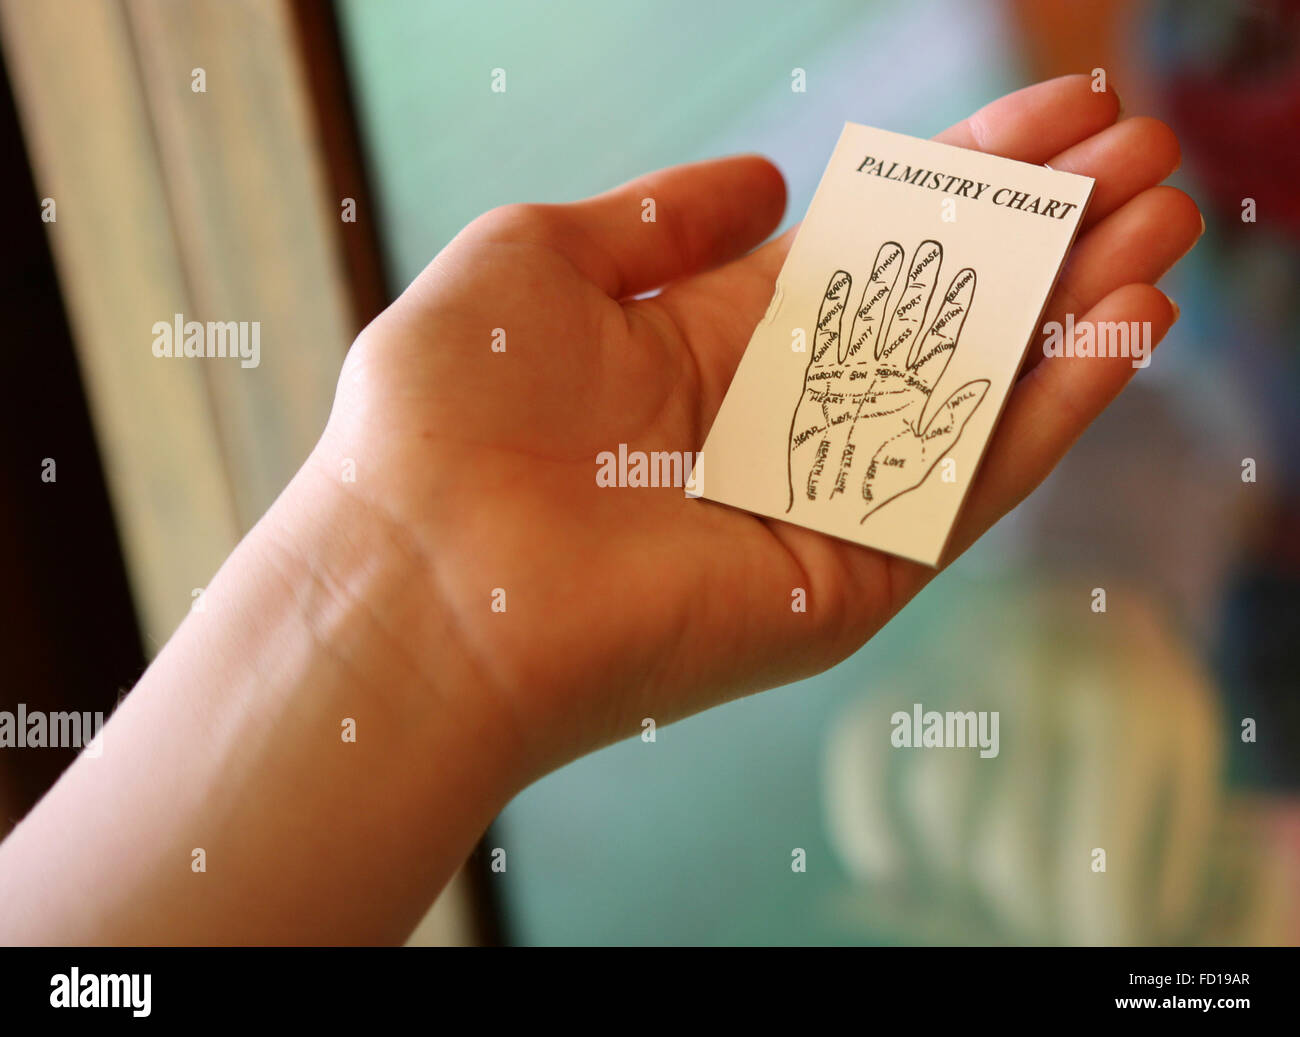 hight resolution of palm reading palmistry chart at fun fair stock image